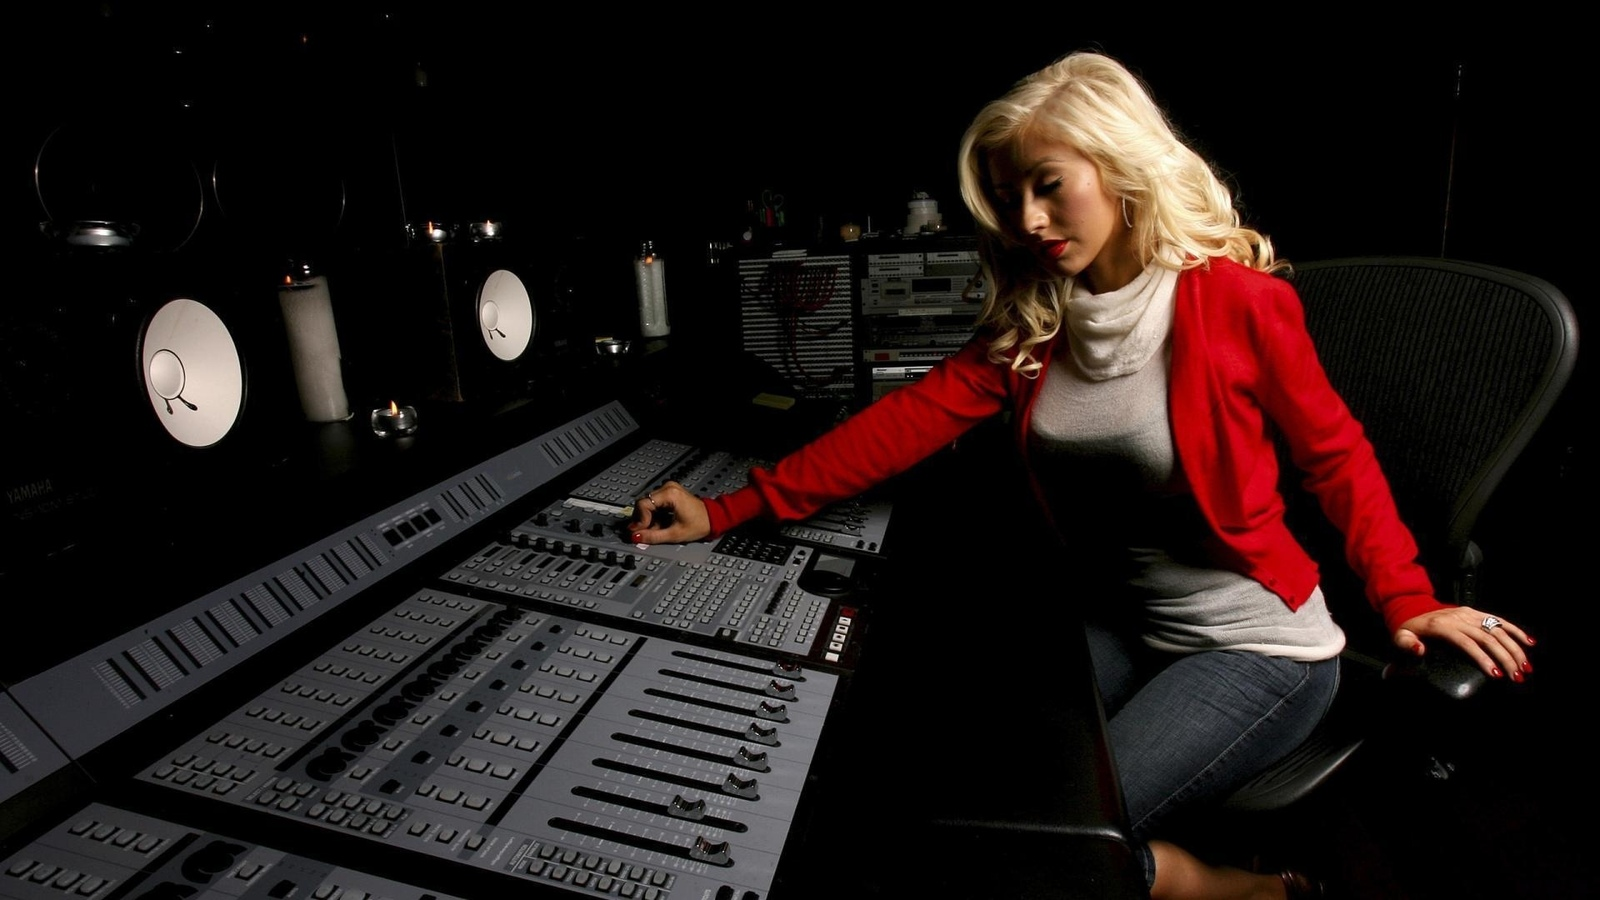 aguilera, music, song, blonde